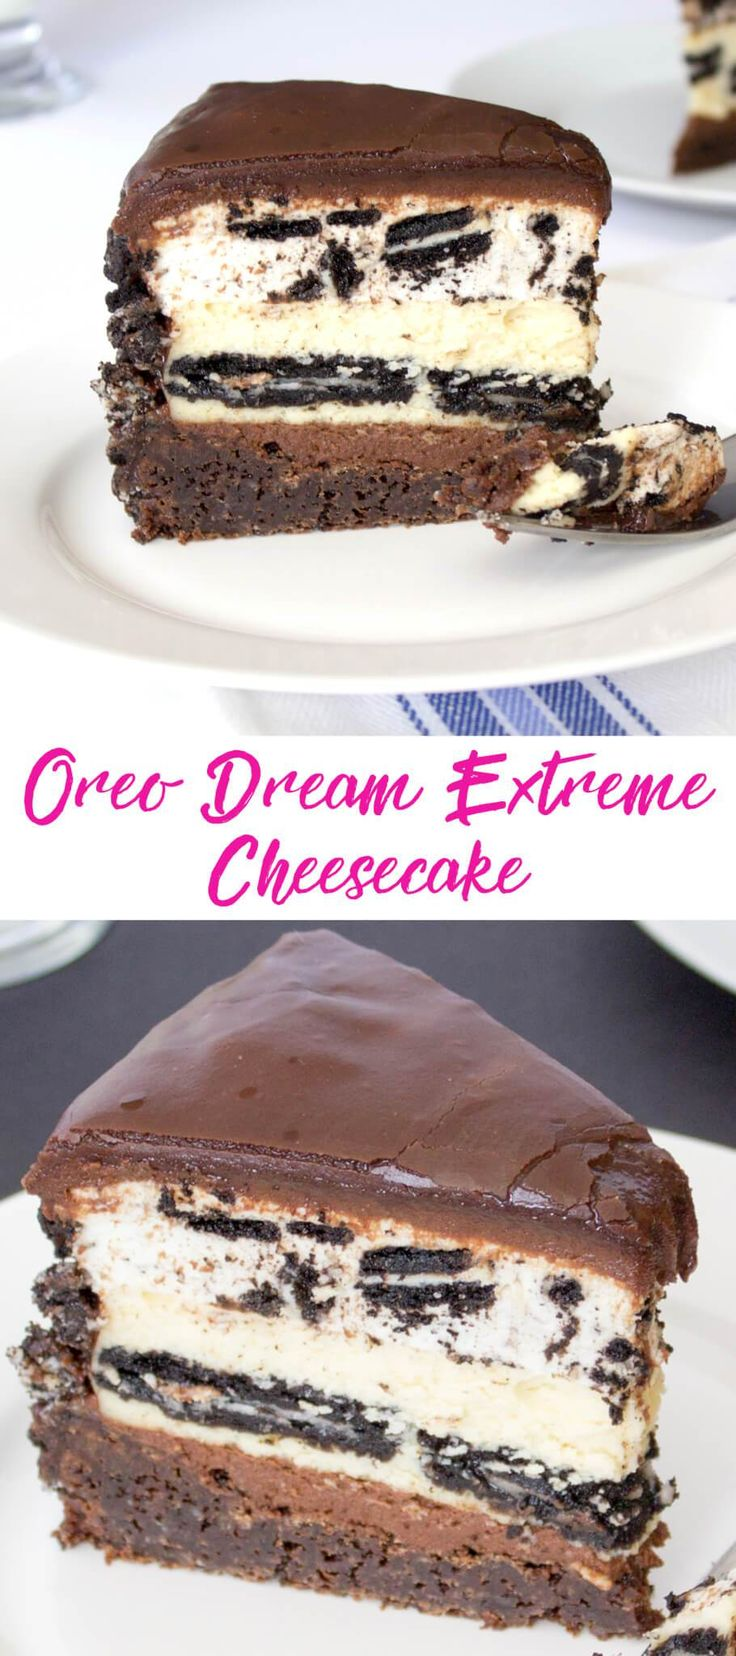 Oreo Dream Extreme Cheesecake - Cheesecake Copycat recipe.   Rich and fudgy chocolate cake covered with layers of chocolate ganache, Oreo cookie cheesecake and Oreo cookie mousse.  Decadent and delicious!!